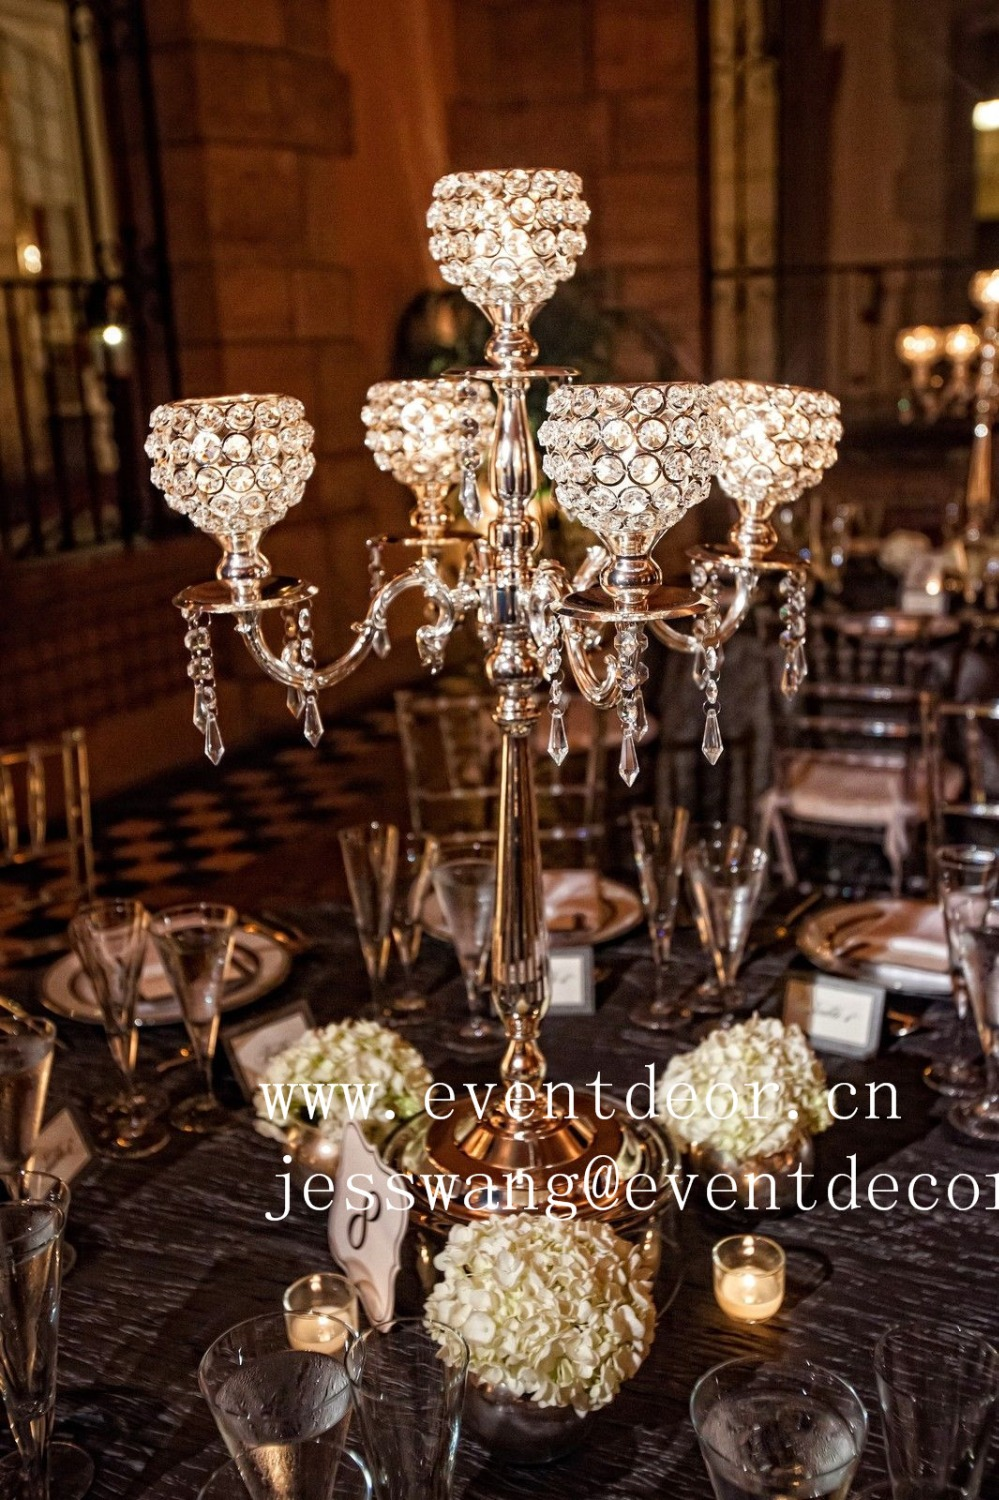 Candelabra With Crystal For Wedding Centerpiece76cm Tall